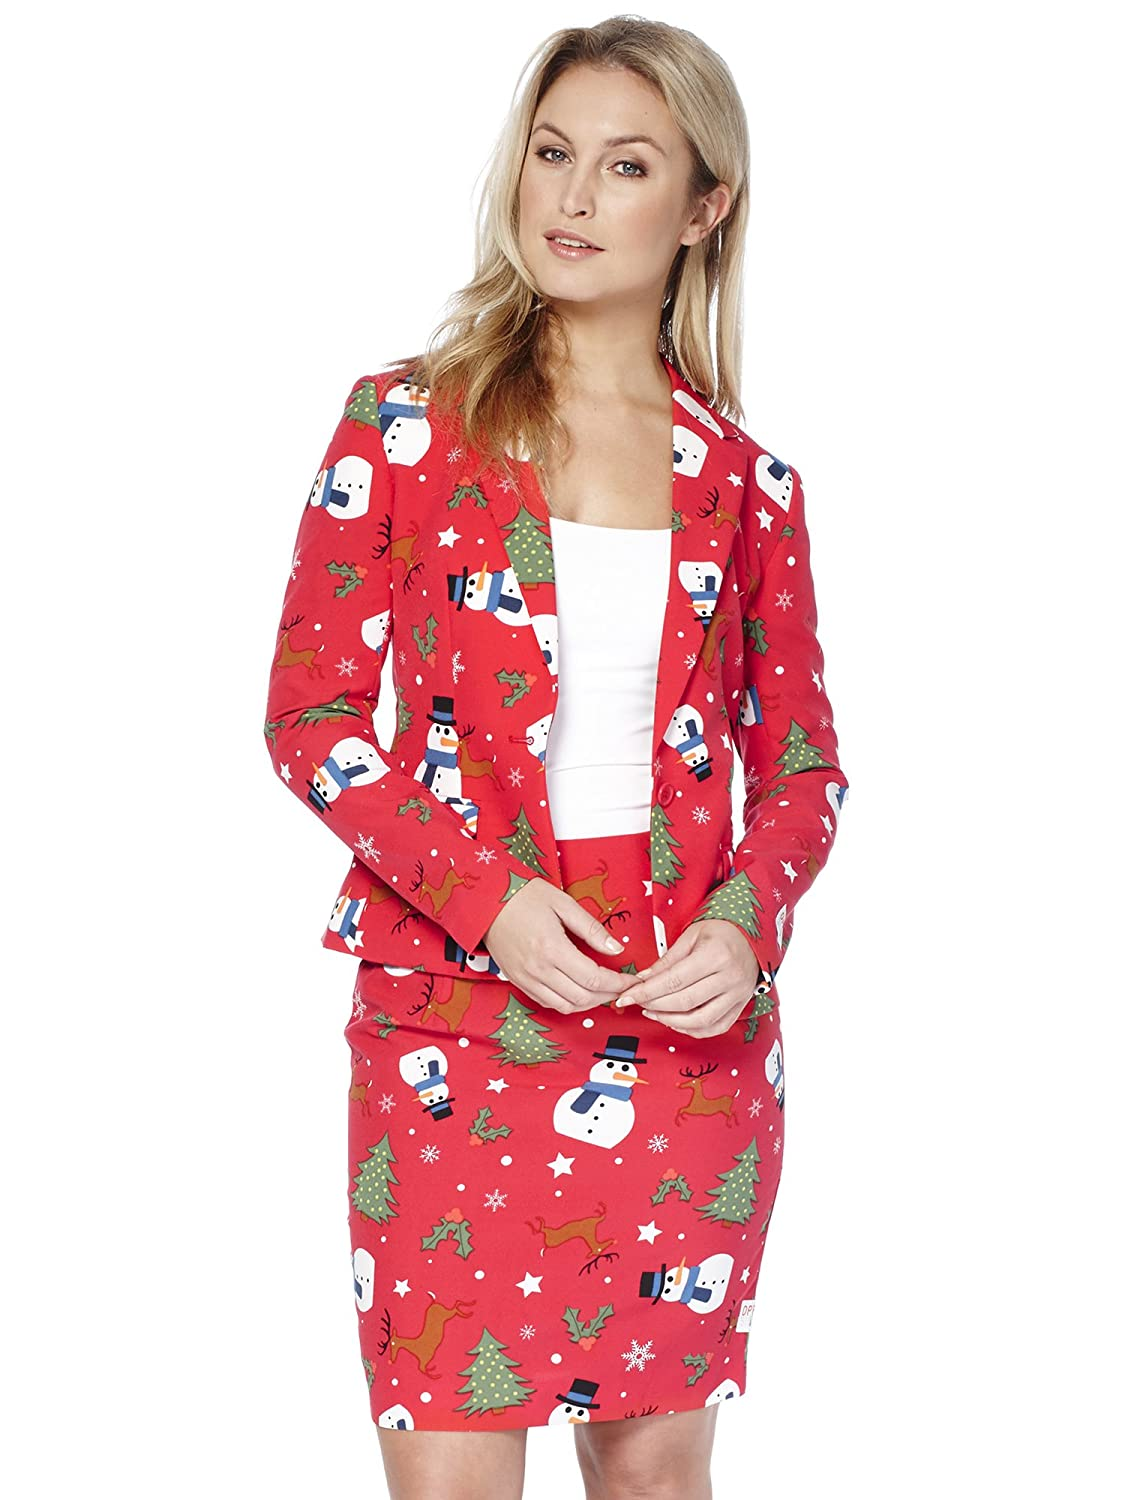 Opposuits Fun Christmas Suits - Full Set Contains Jacket Skirt US12